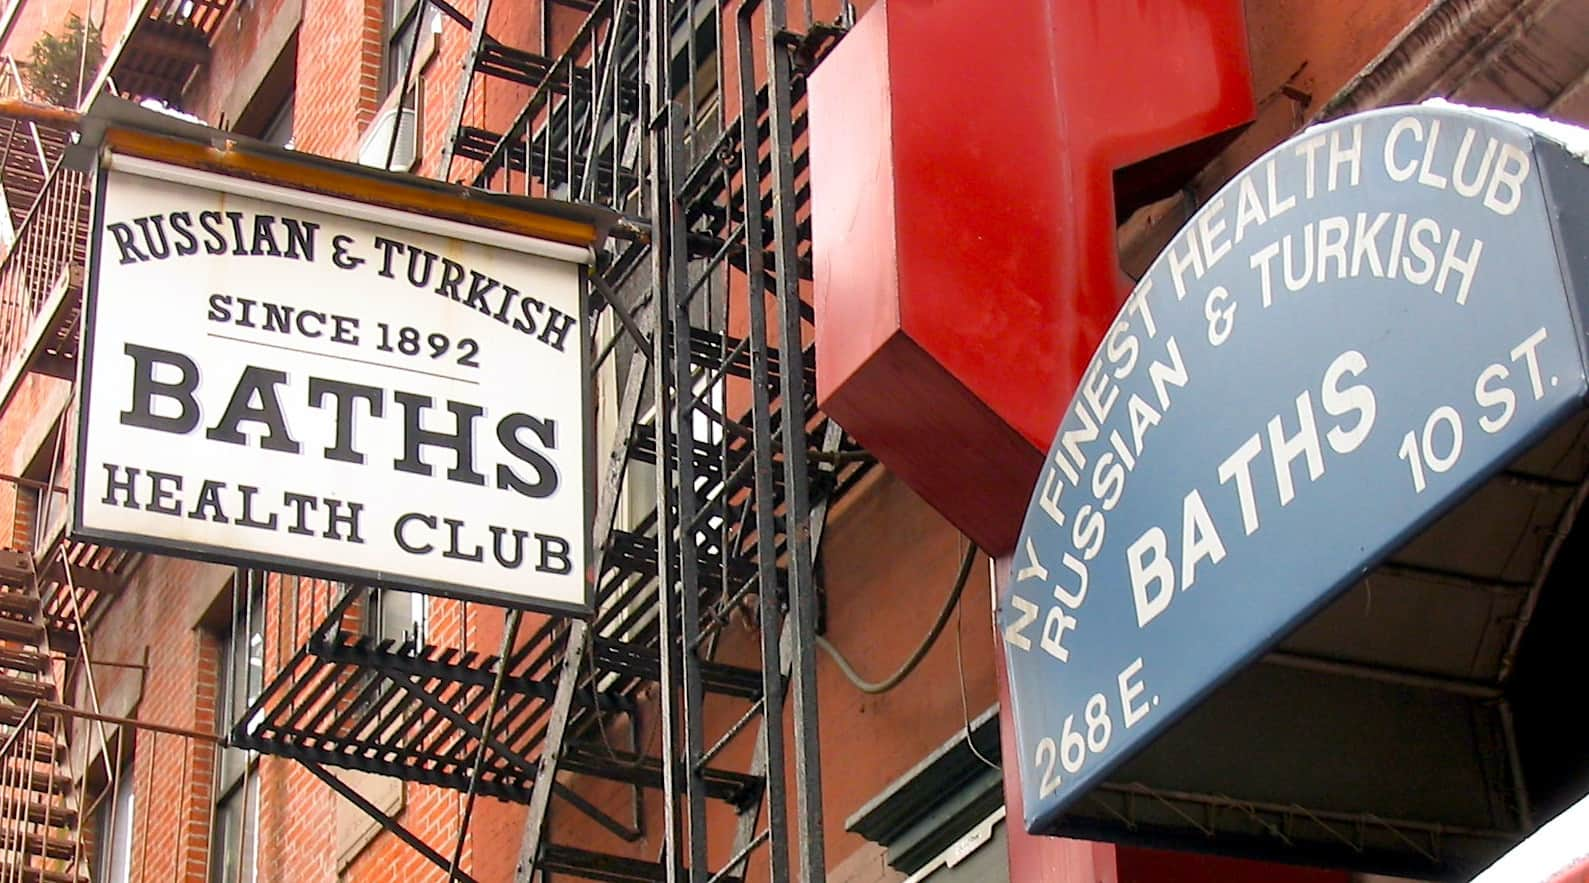 Sign for the Russian and Turkish Baths